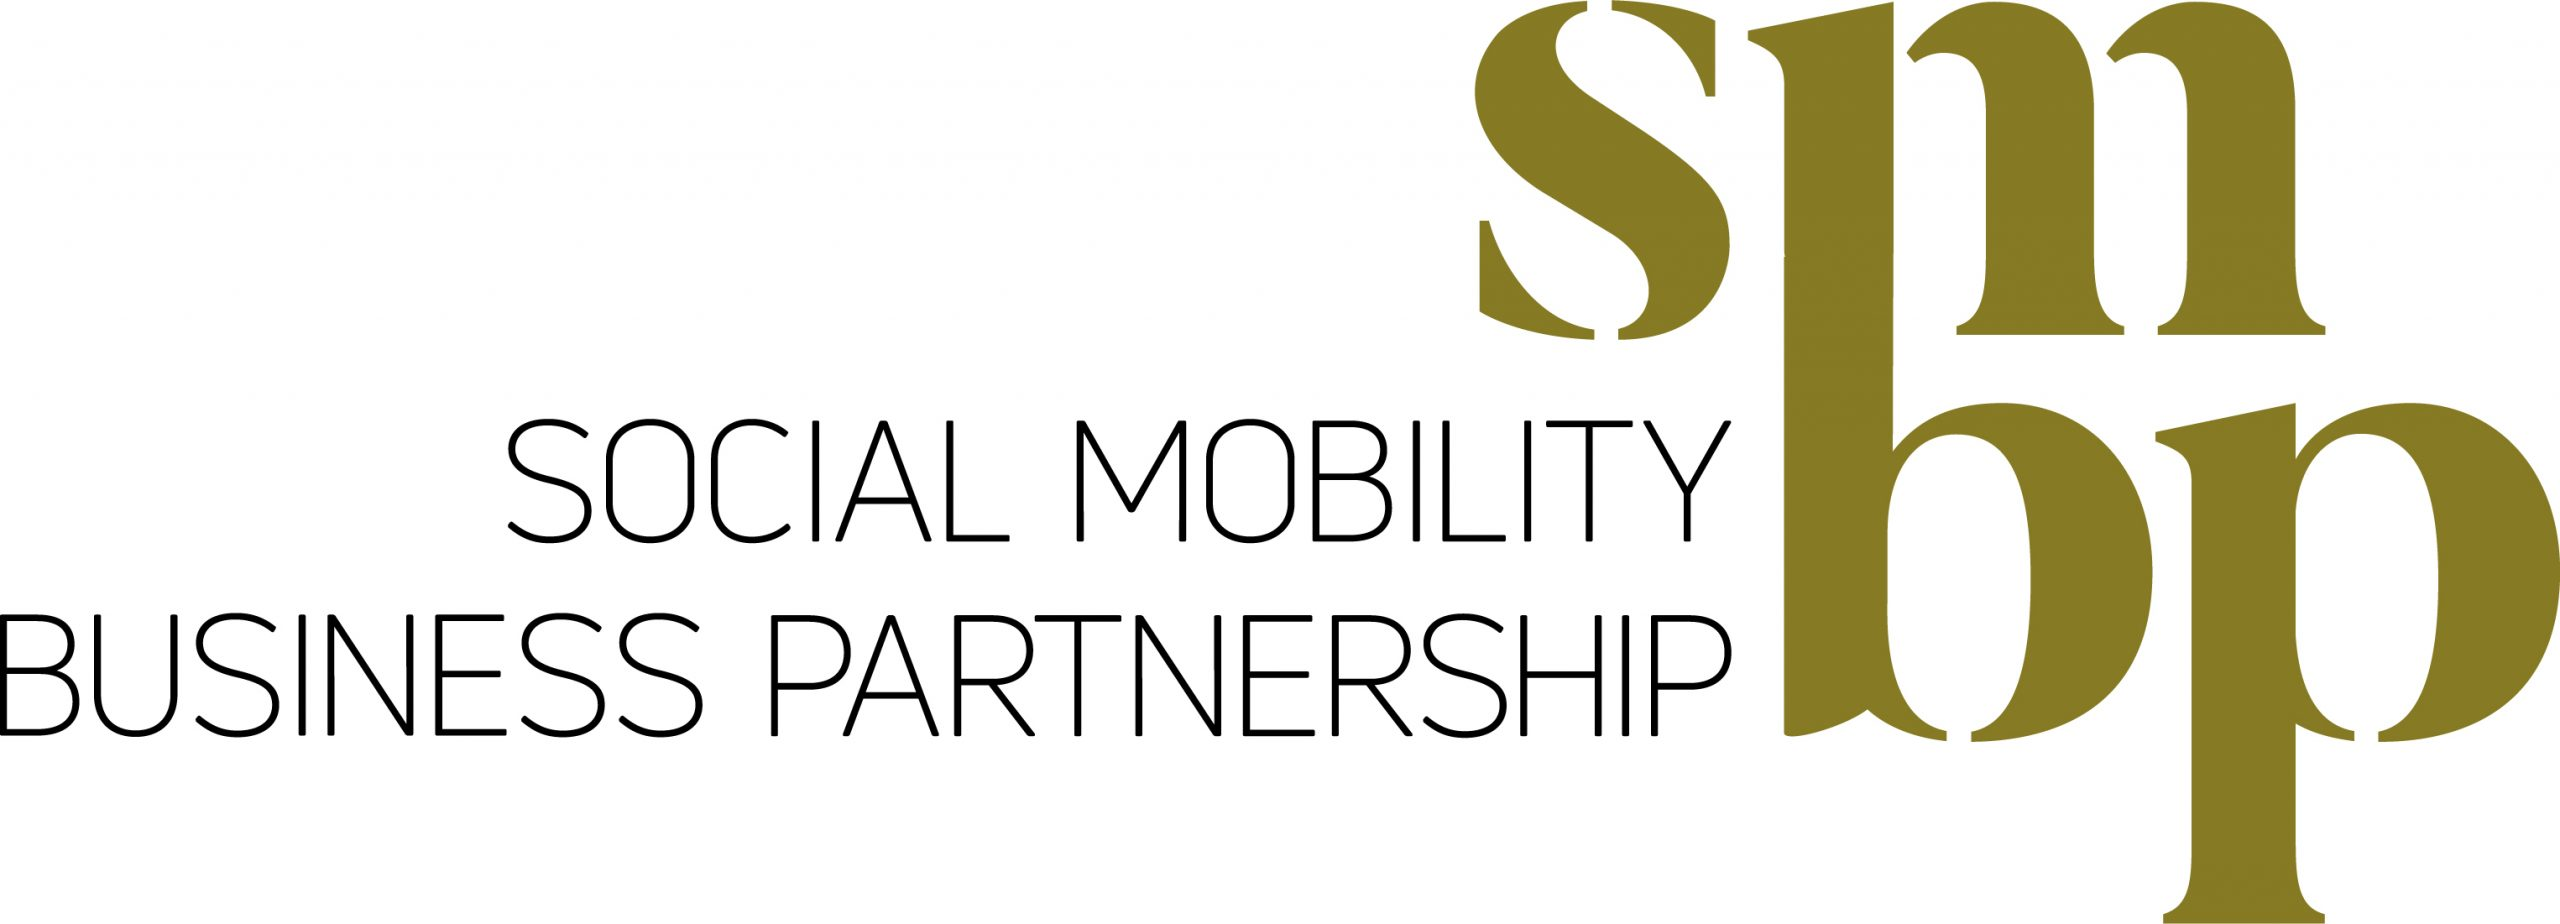 Social Mobility Business Partnership